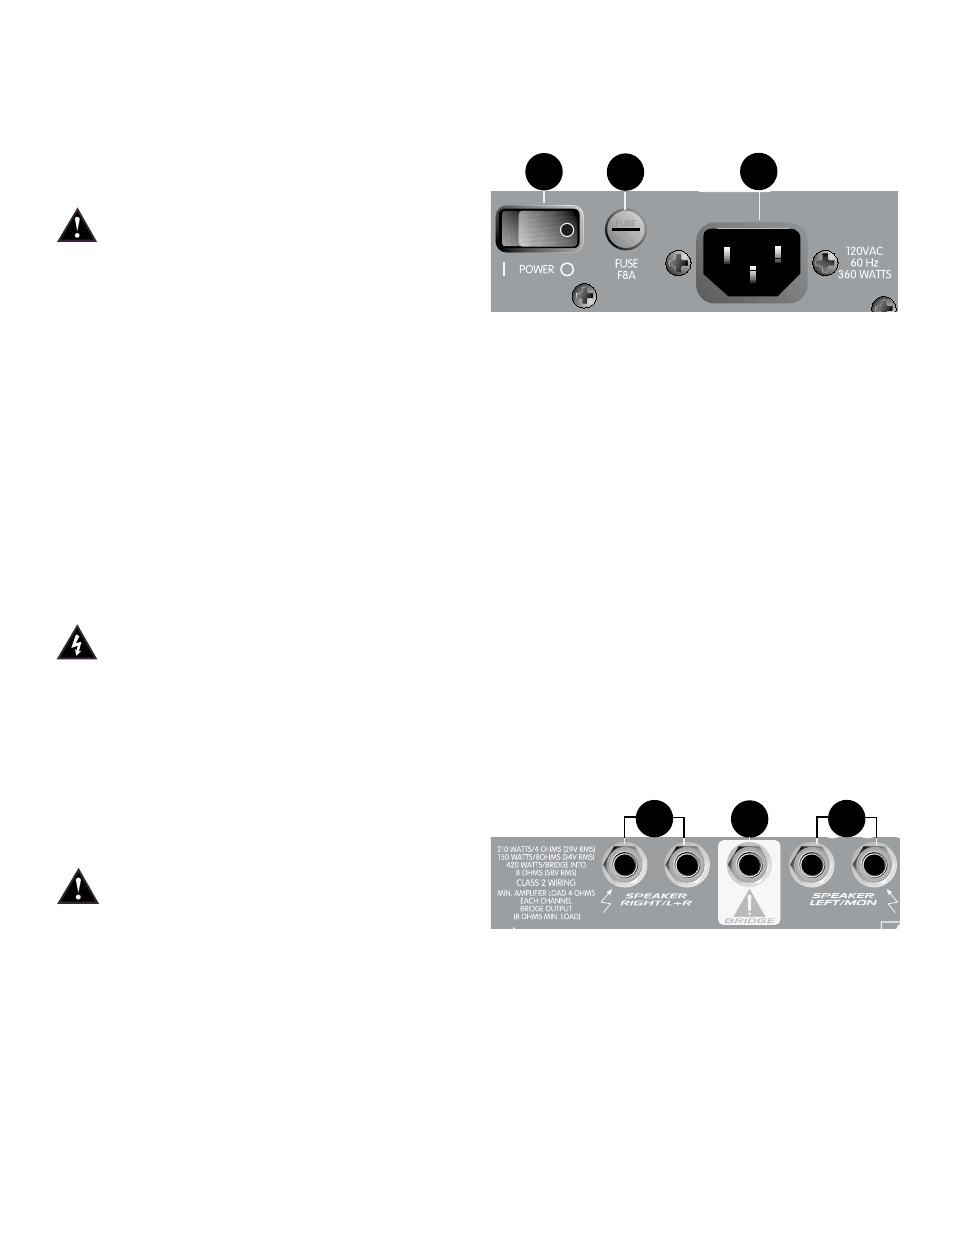 Peavey Xr 800f User Manual Page 4 48 Wiring A 1 Out Put Jack